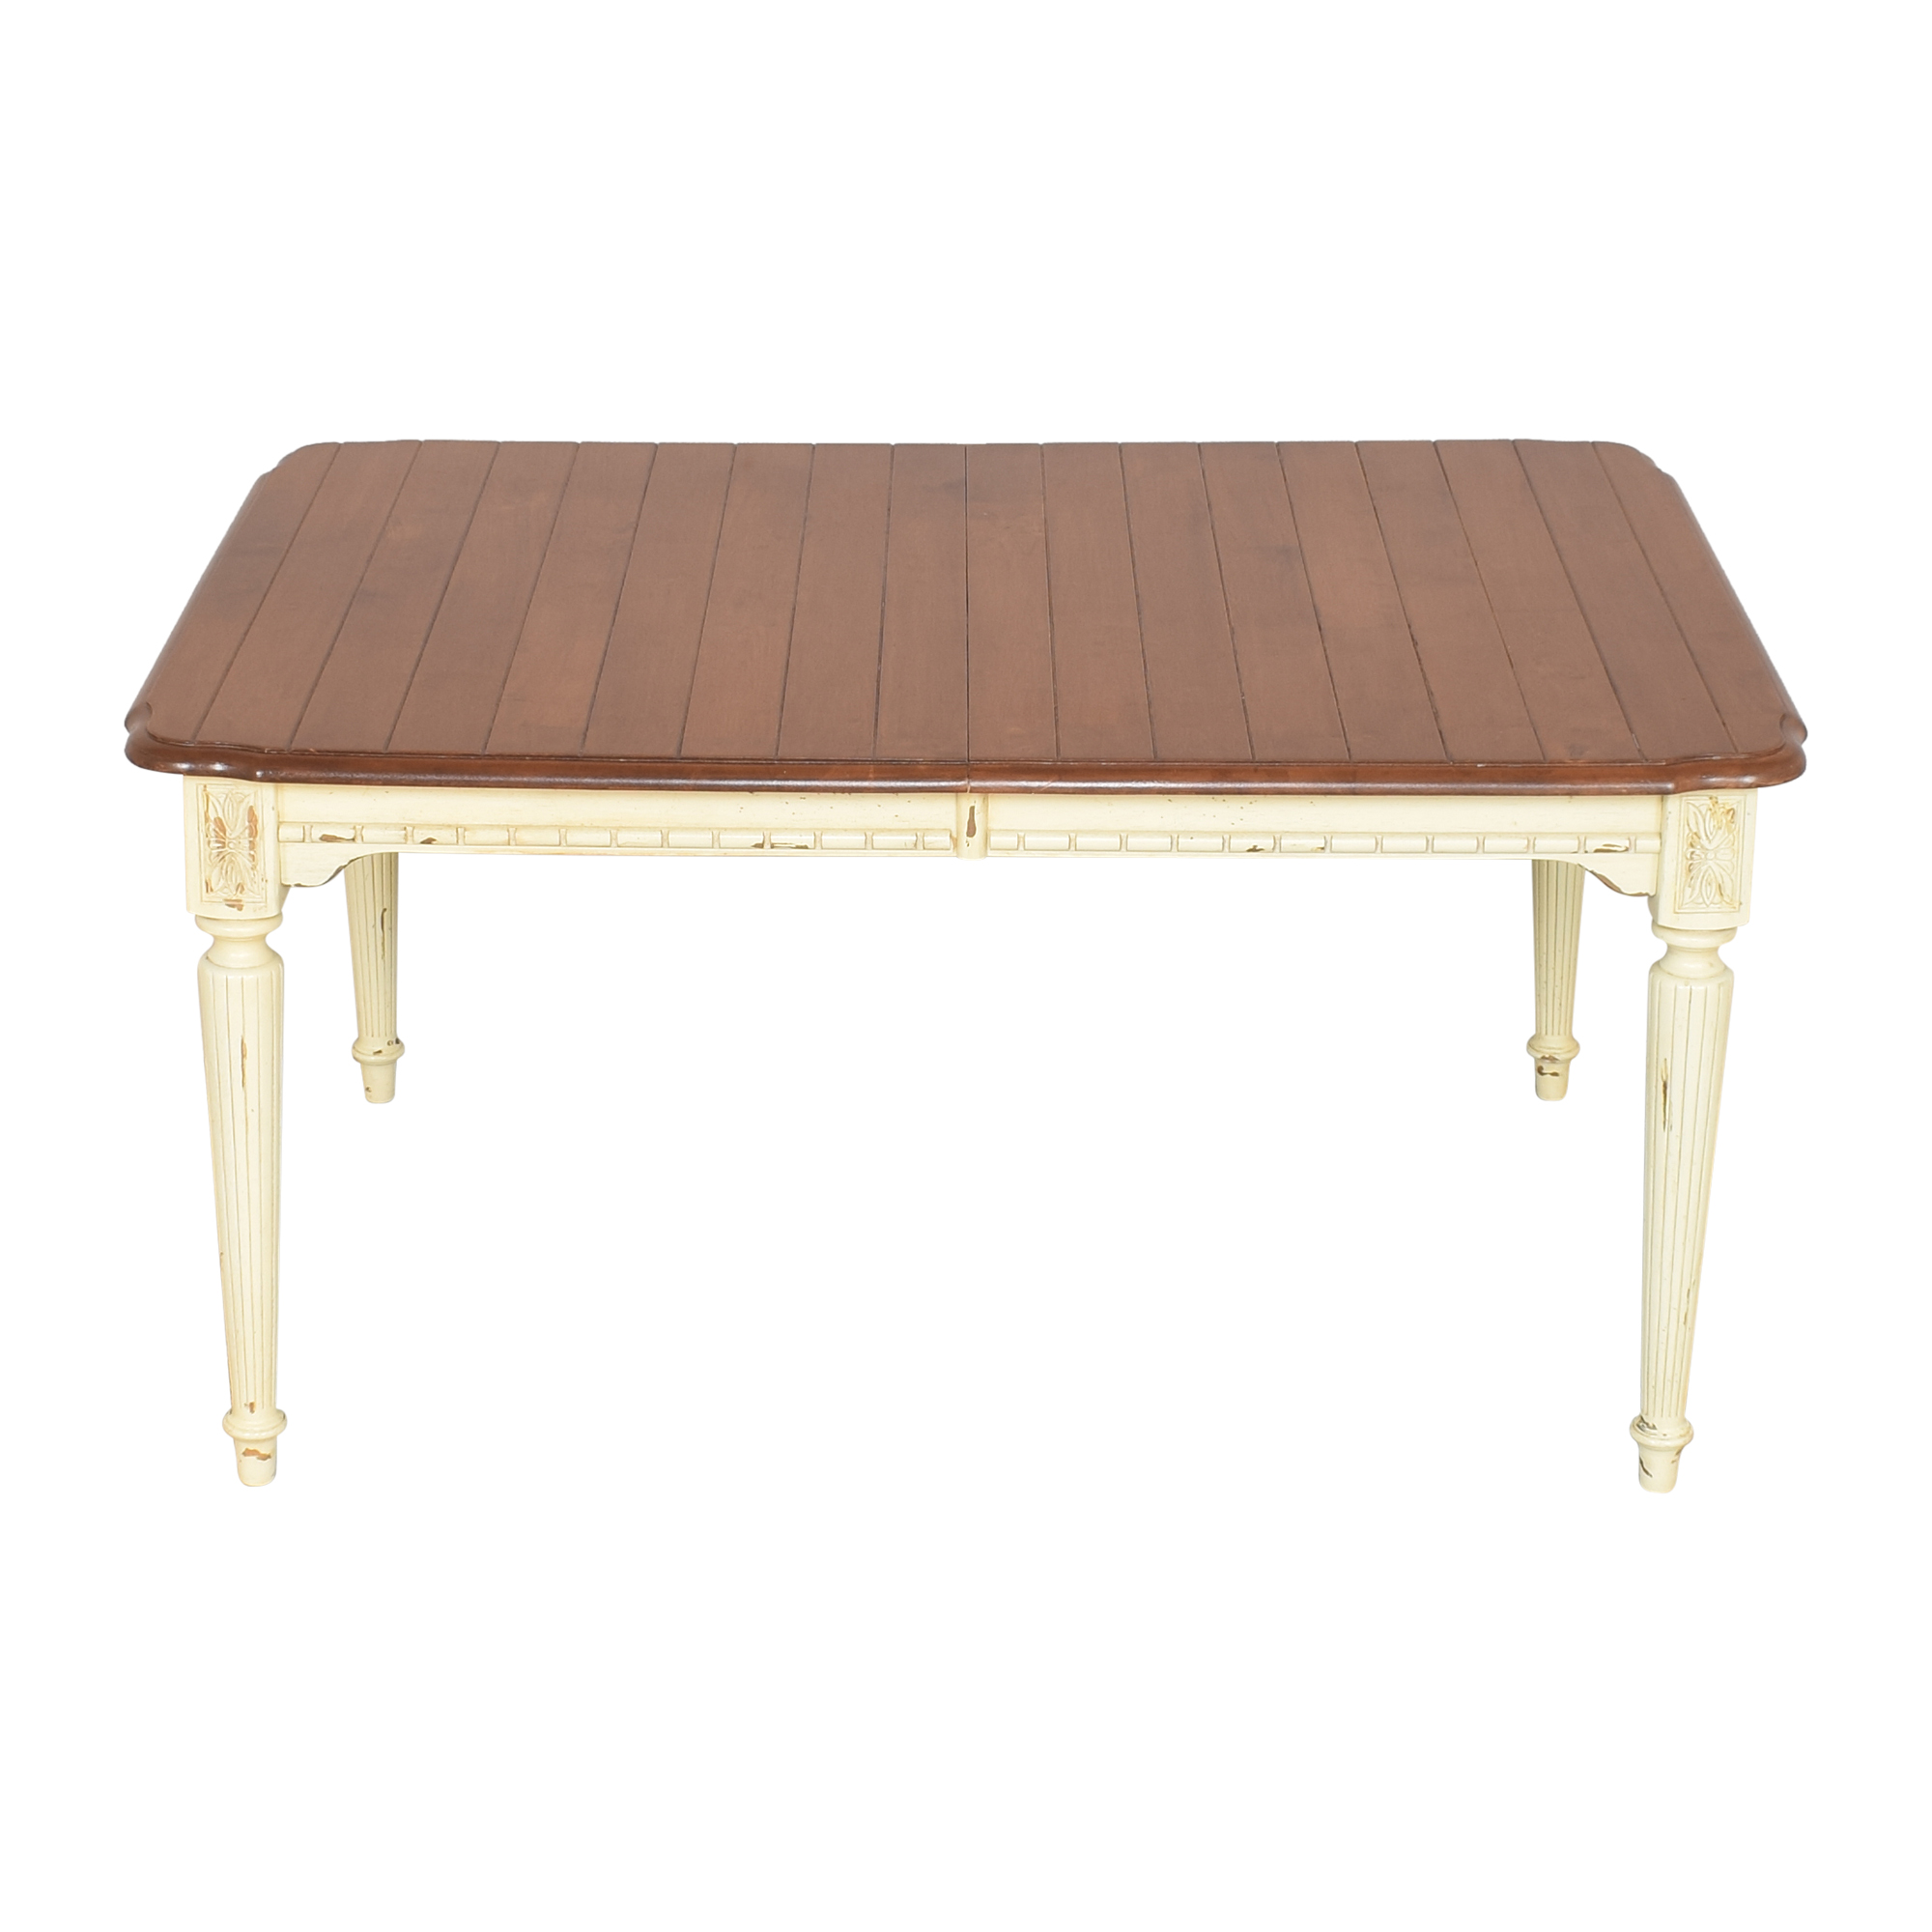 Rustic Extendable Dining Table discount